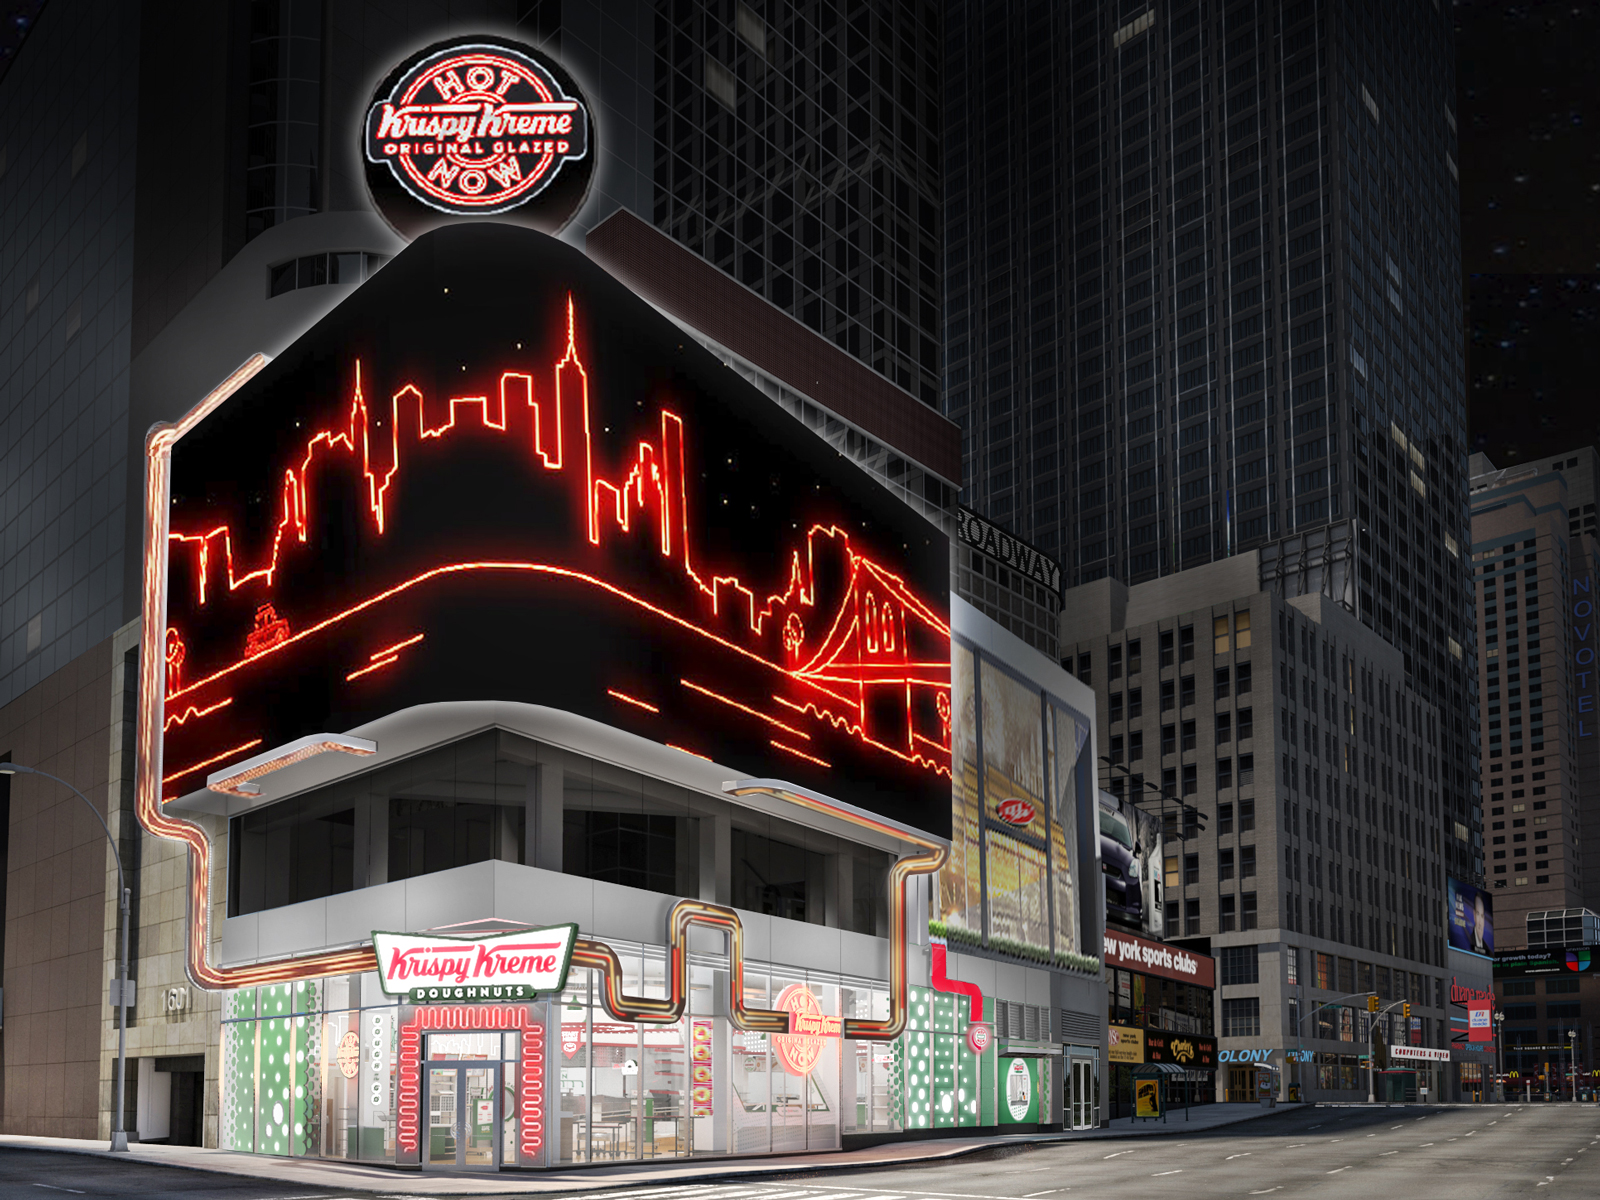 Krispy Kreme to Open 'Flagship' Location in NYC, a Massive Tribute to Doughnuts